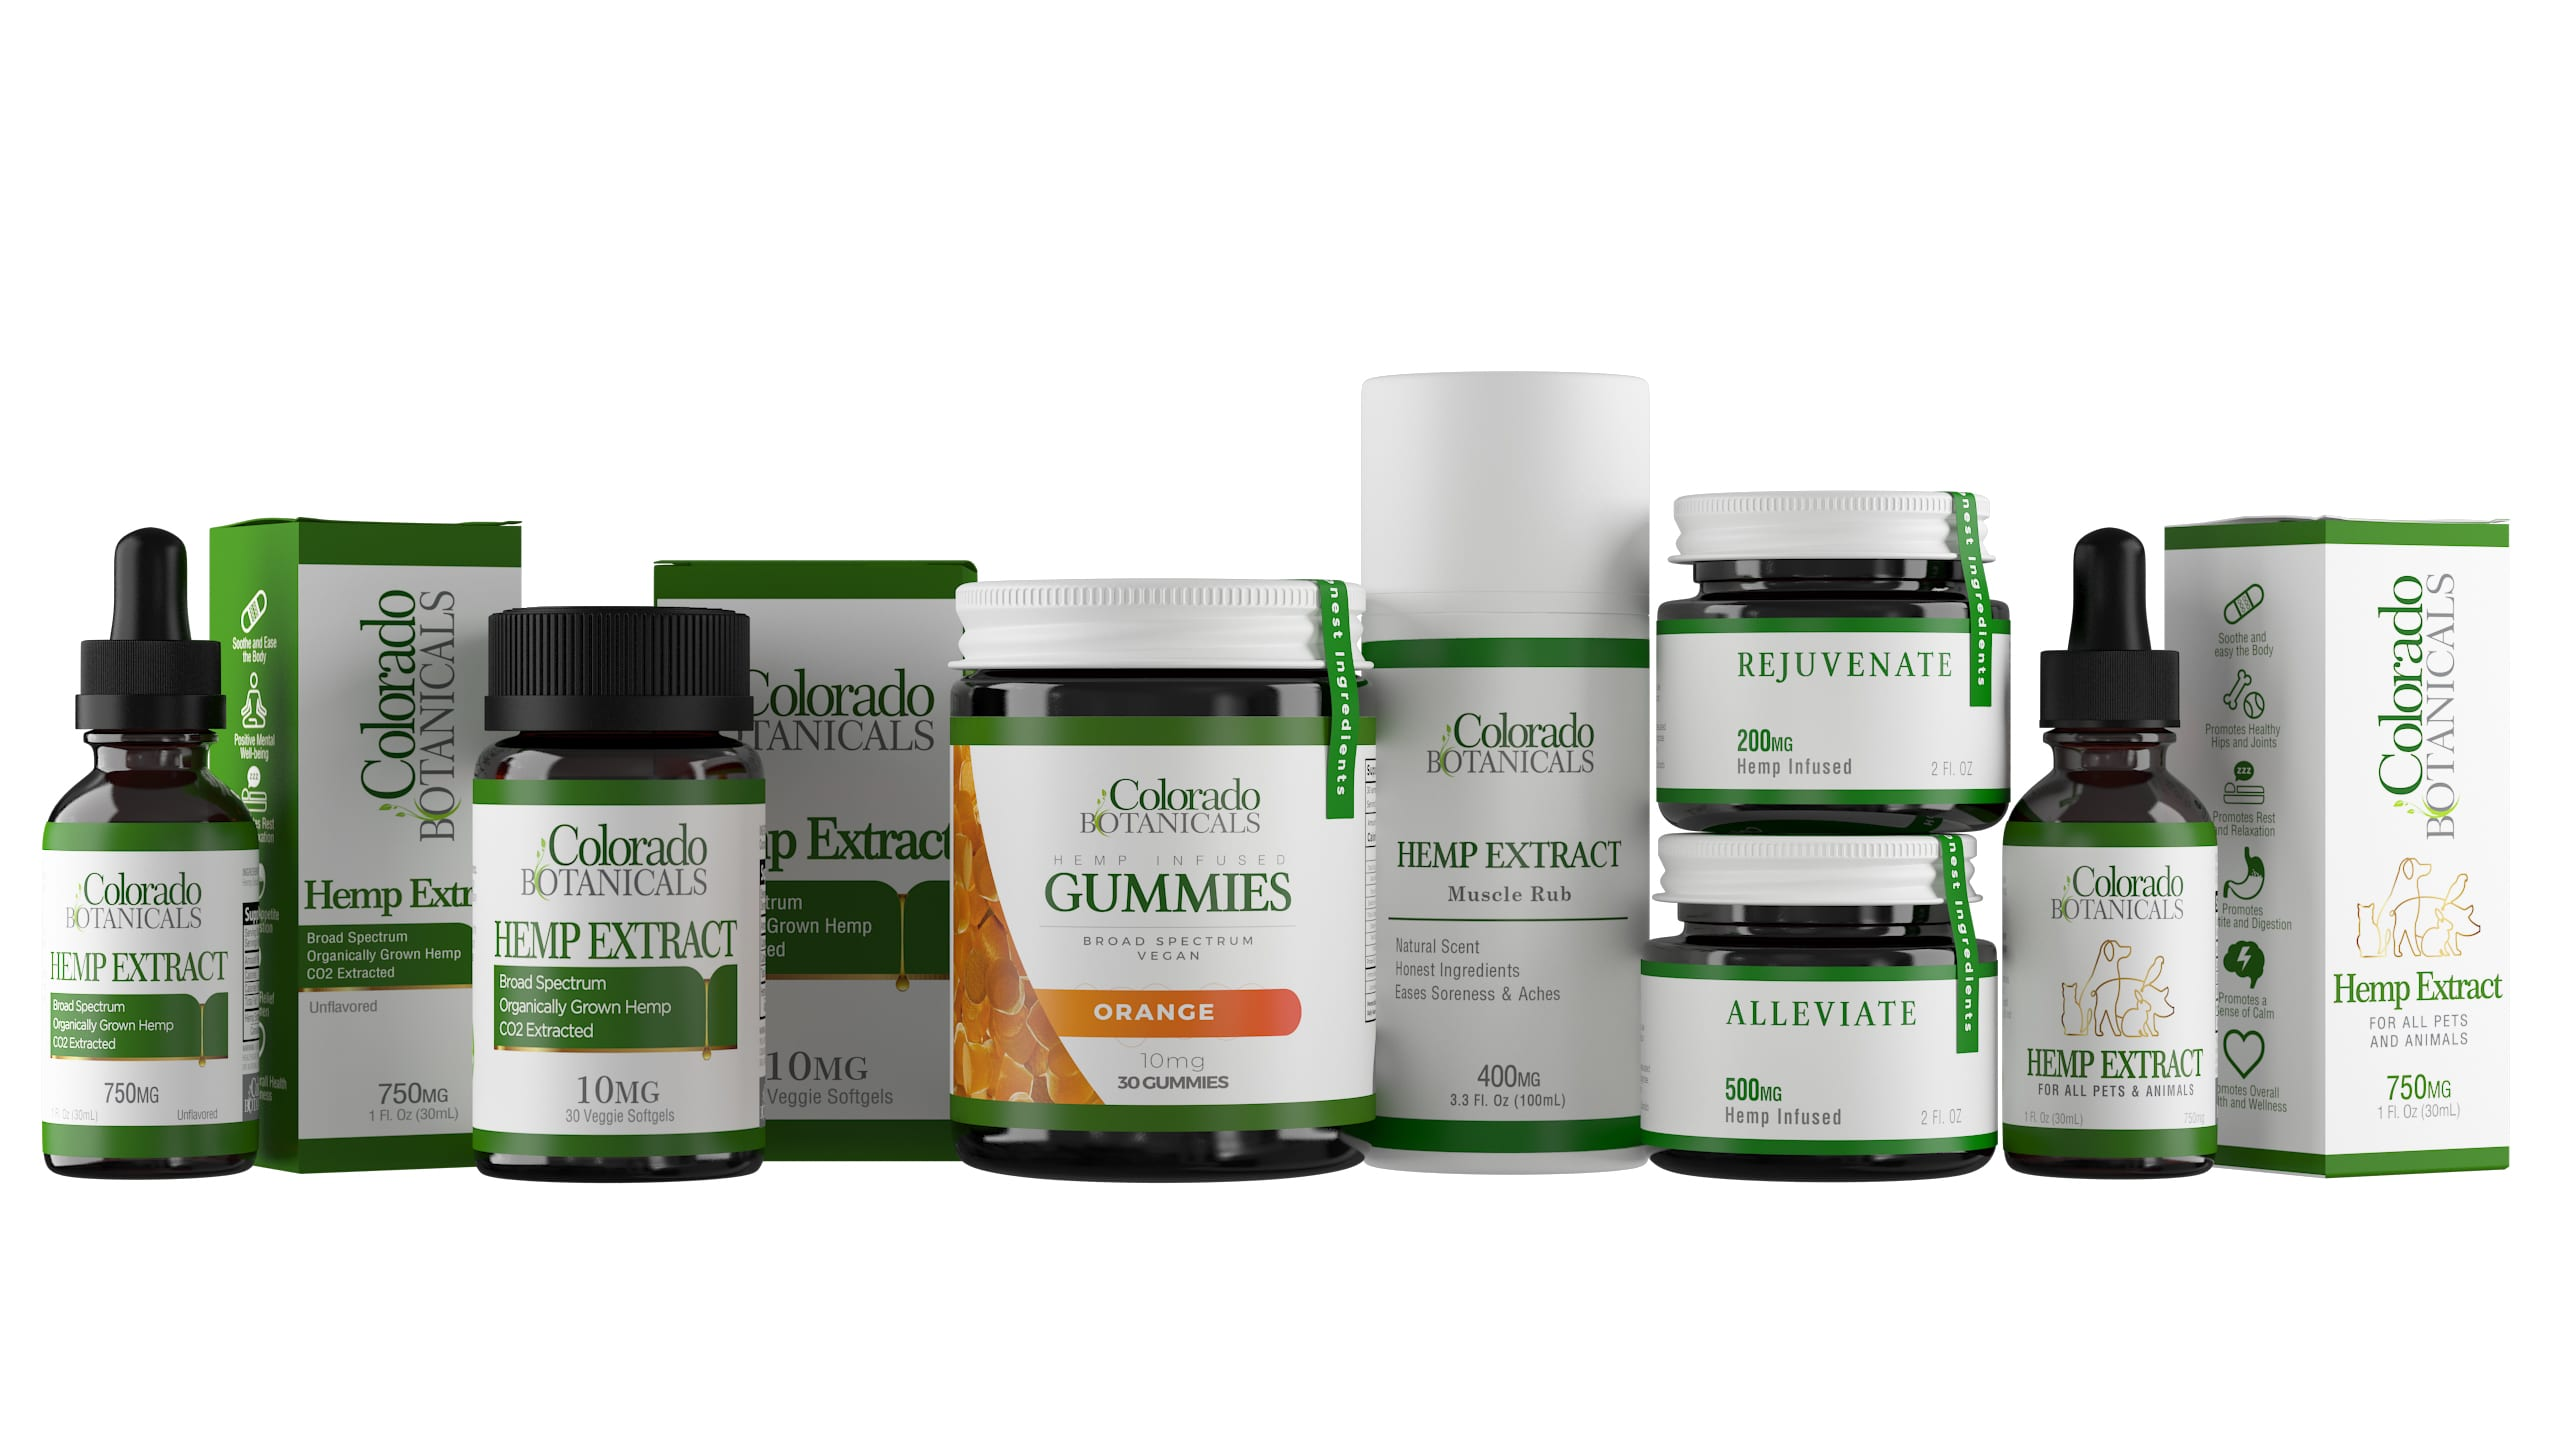 Colorado Botanicals CBD Discount Codes: